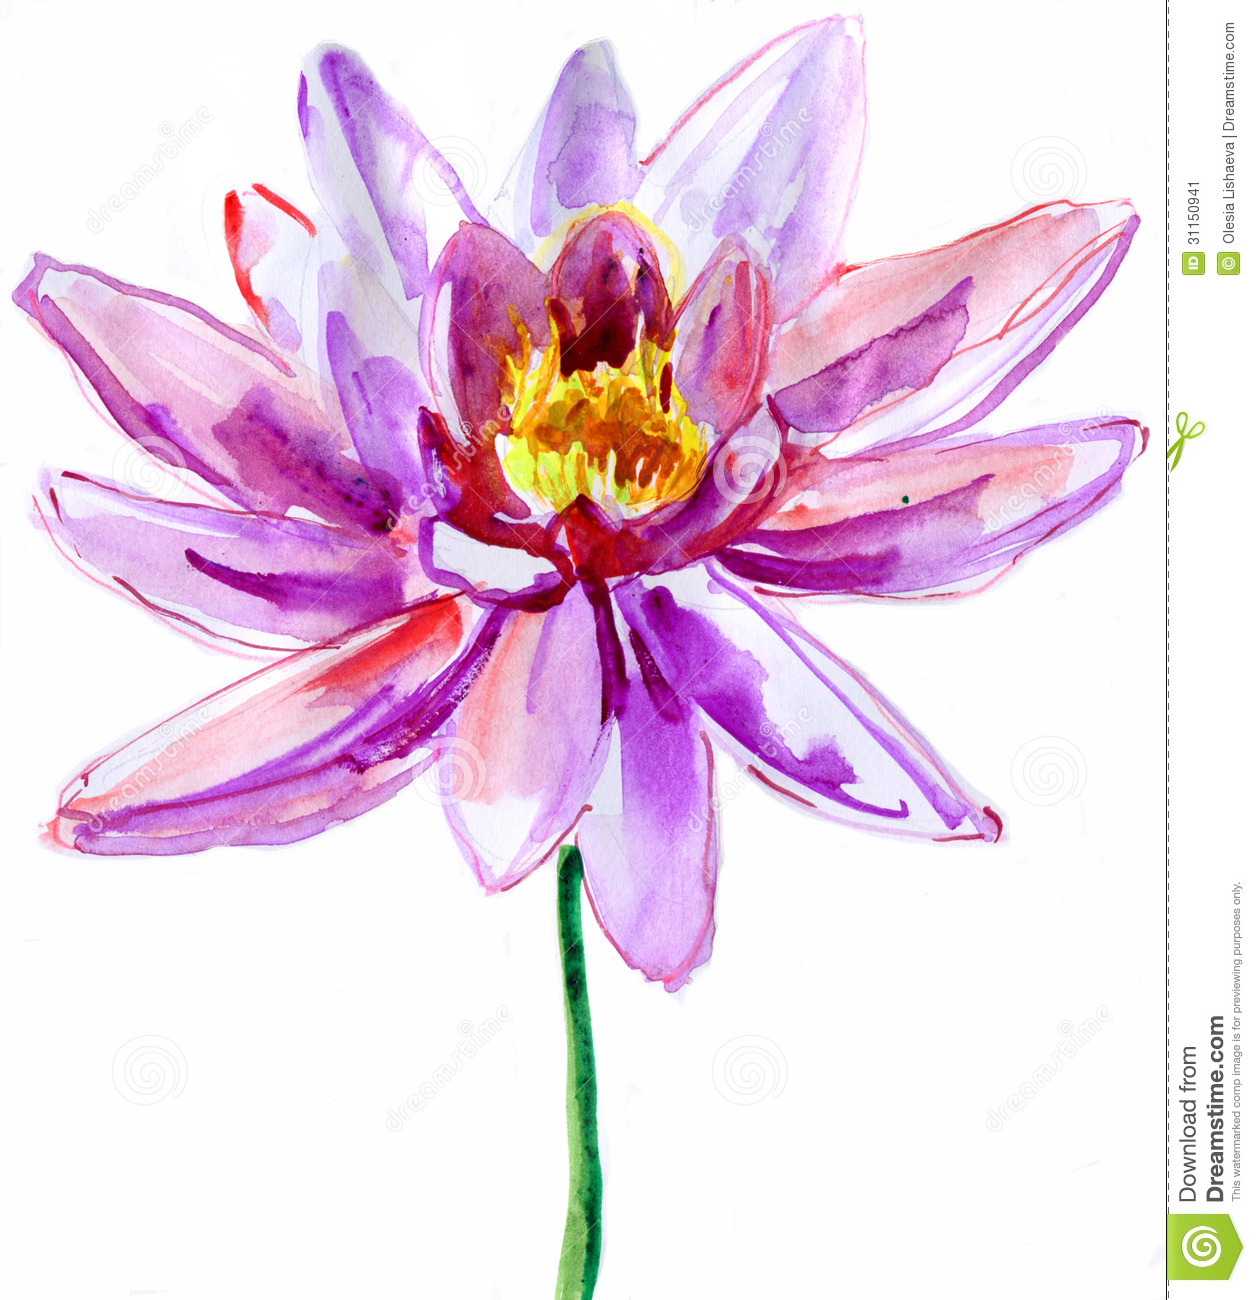 Beautiful LotusSingle Lotus Flower Isolated On White Background Watercolor